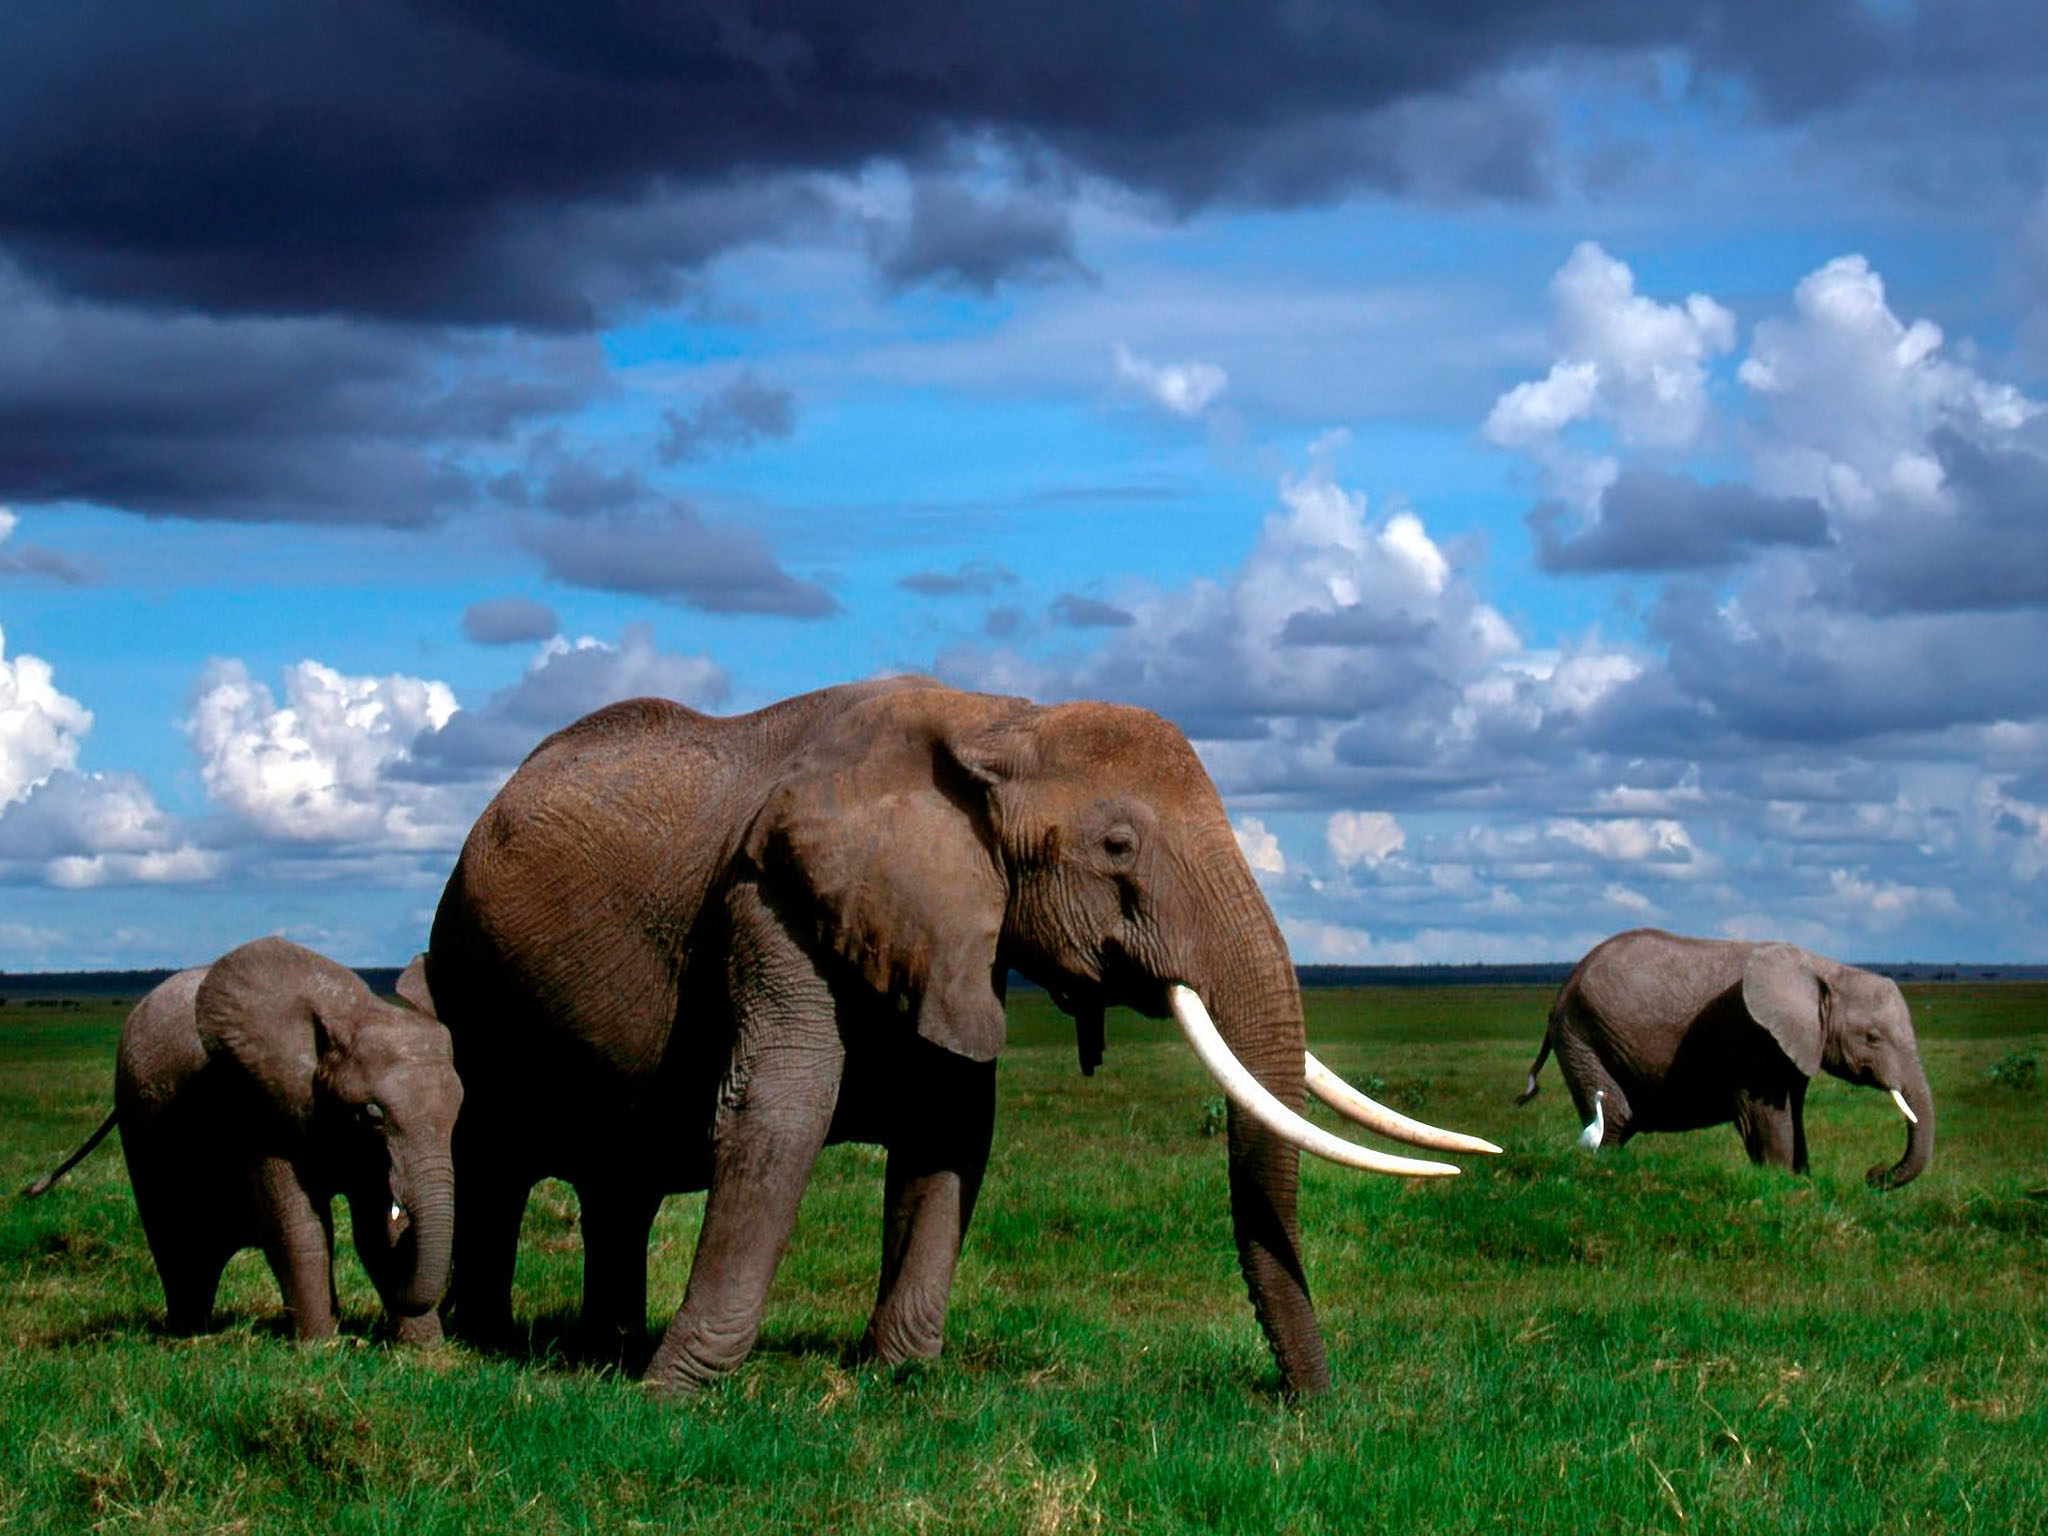 Elephant Full HD Wallpaper And Background Image